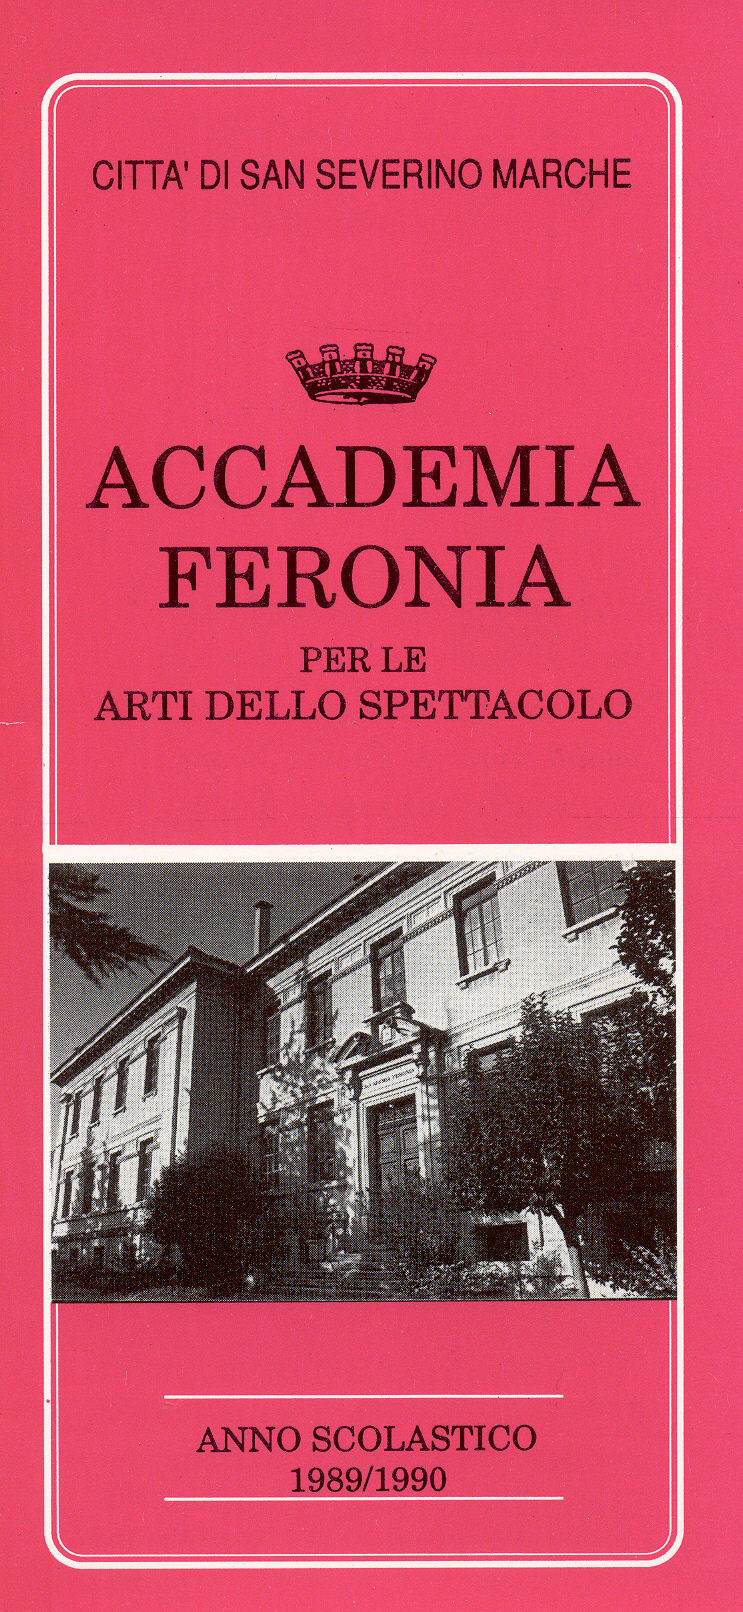 http://www.accademiaferonia.it/wp-content/uploads/2016/03/1.jpg